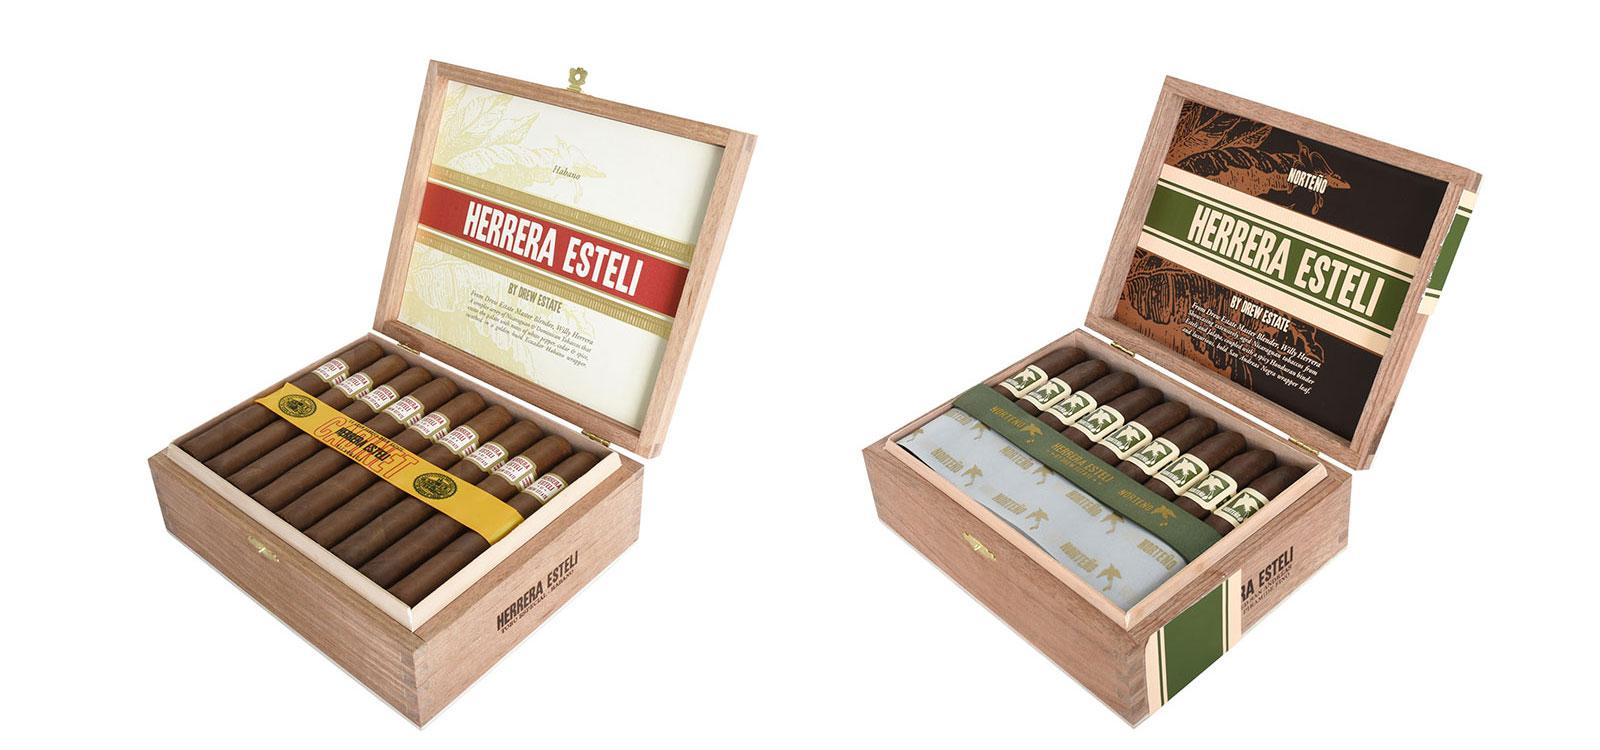 The newly redesigned packaging for Herrera Esteli Habano (left) and Norteno (right).